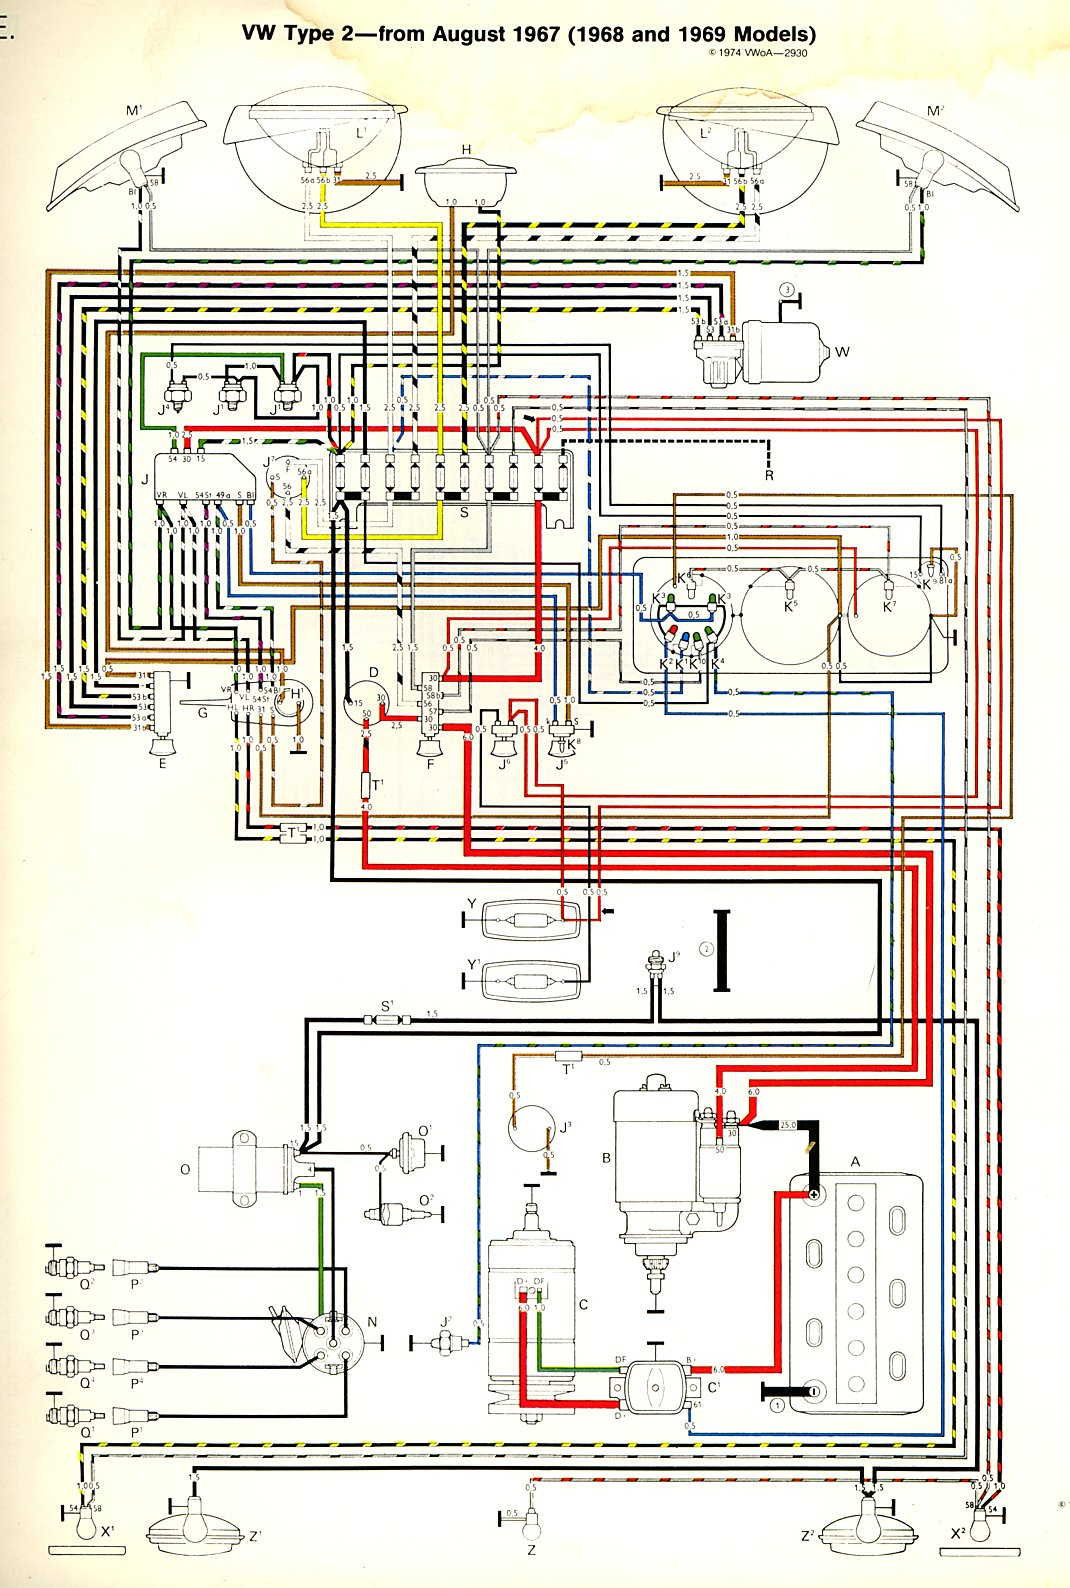 baybus_6869a bus wiring diagram vw wiring harness diagram \u2022 wiring diagrams j VW Jetta Wiring Diagram at gsmx.co